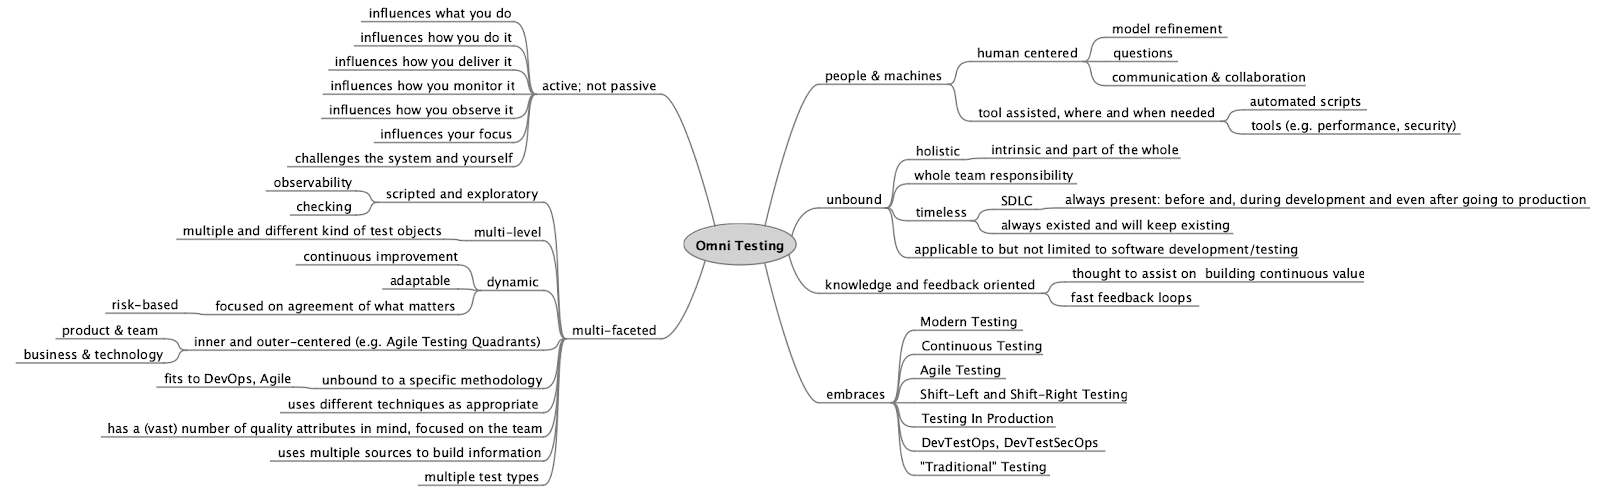 Cover Image for Shifting Towards Omni Testing: Part 2